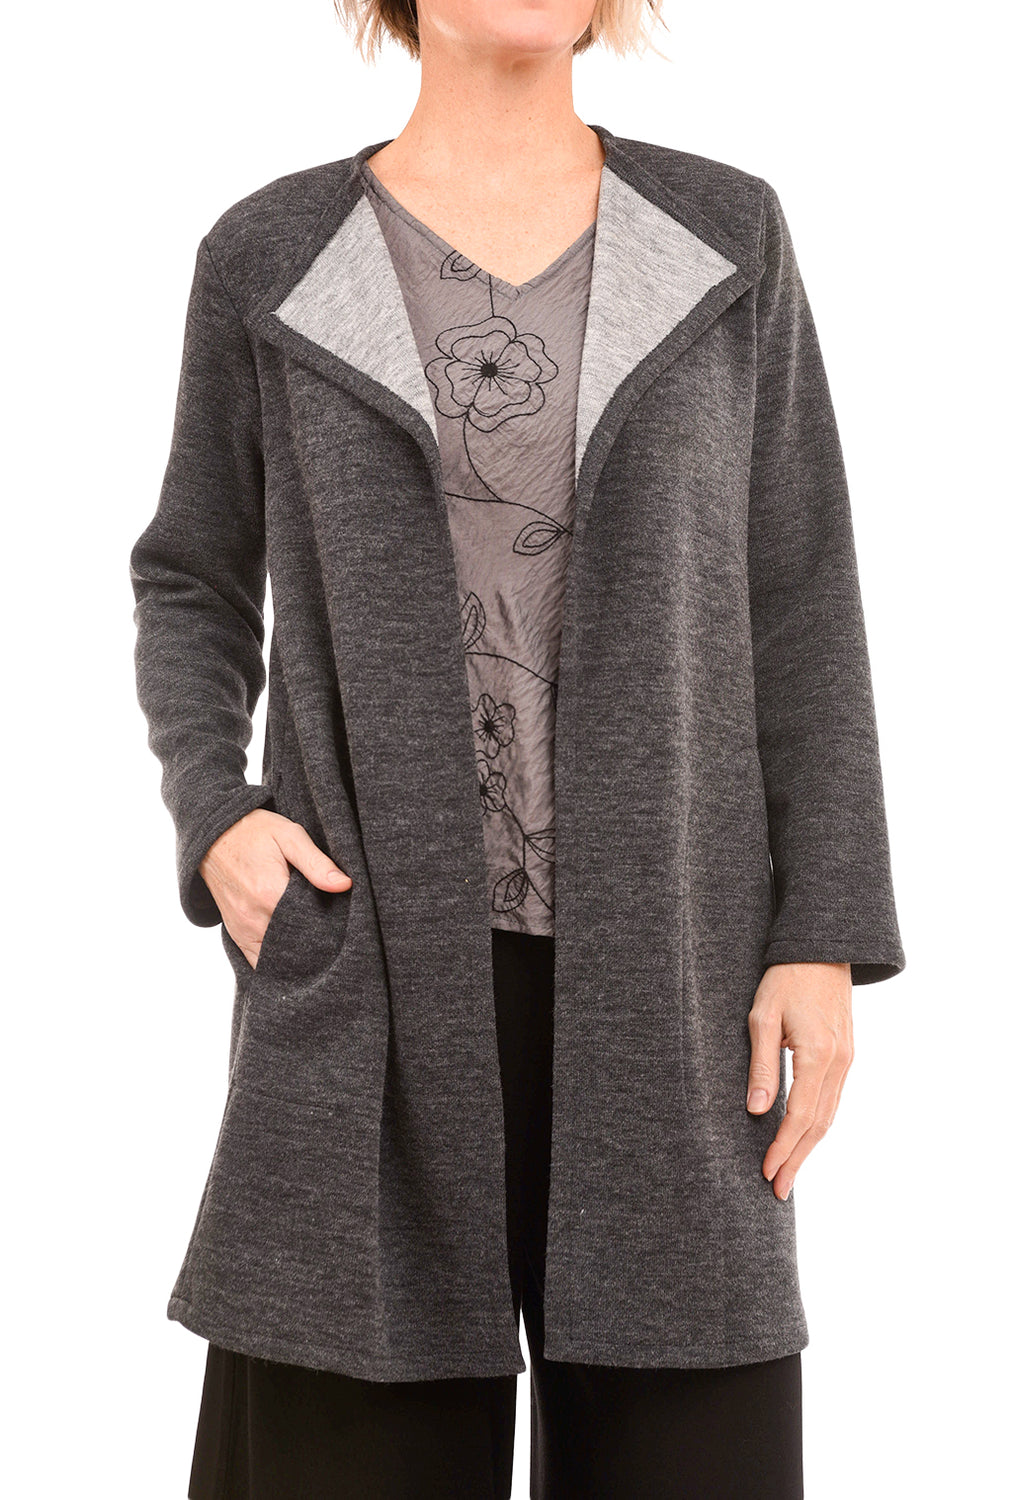 Christopher Calvin Double-Face Open Jacket, Charcoal